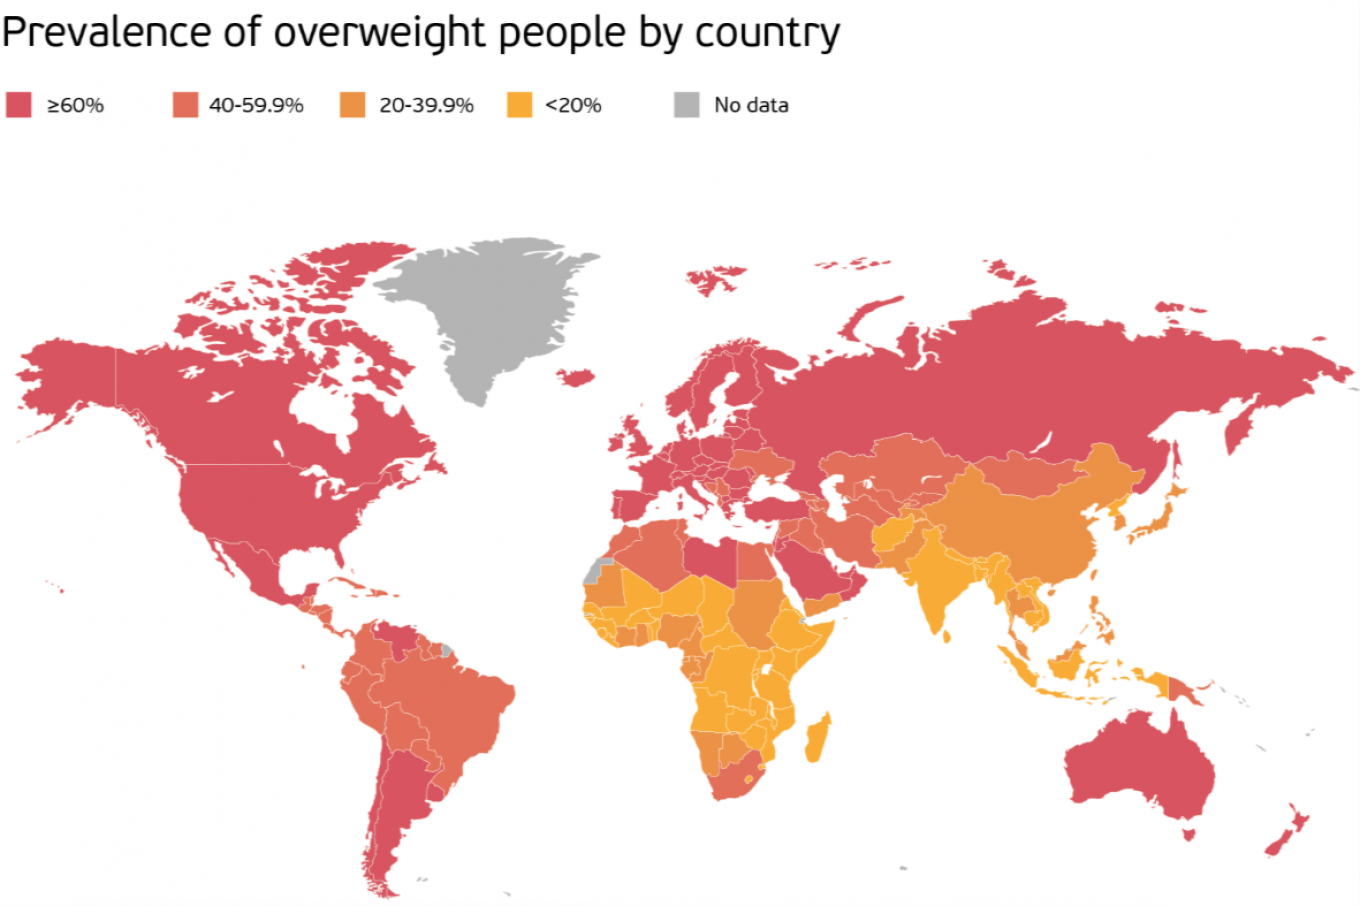 Overweight and obesity rates in Russia are among the highest in the world. Source: World Health Organization